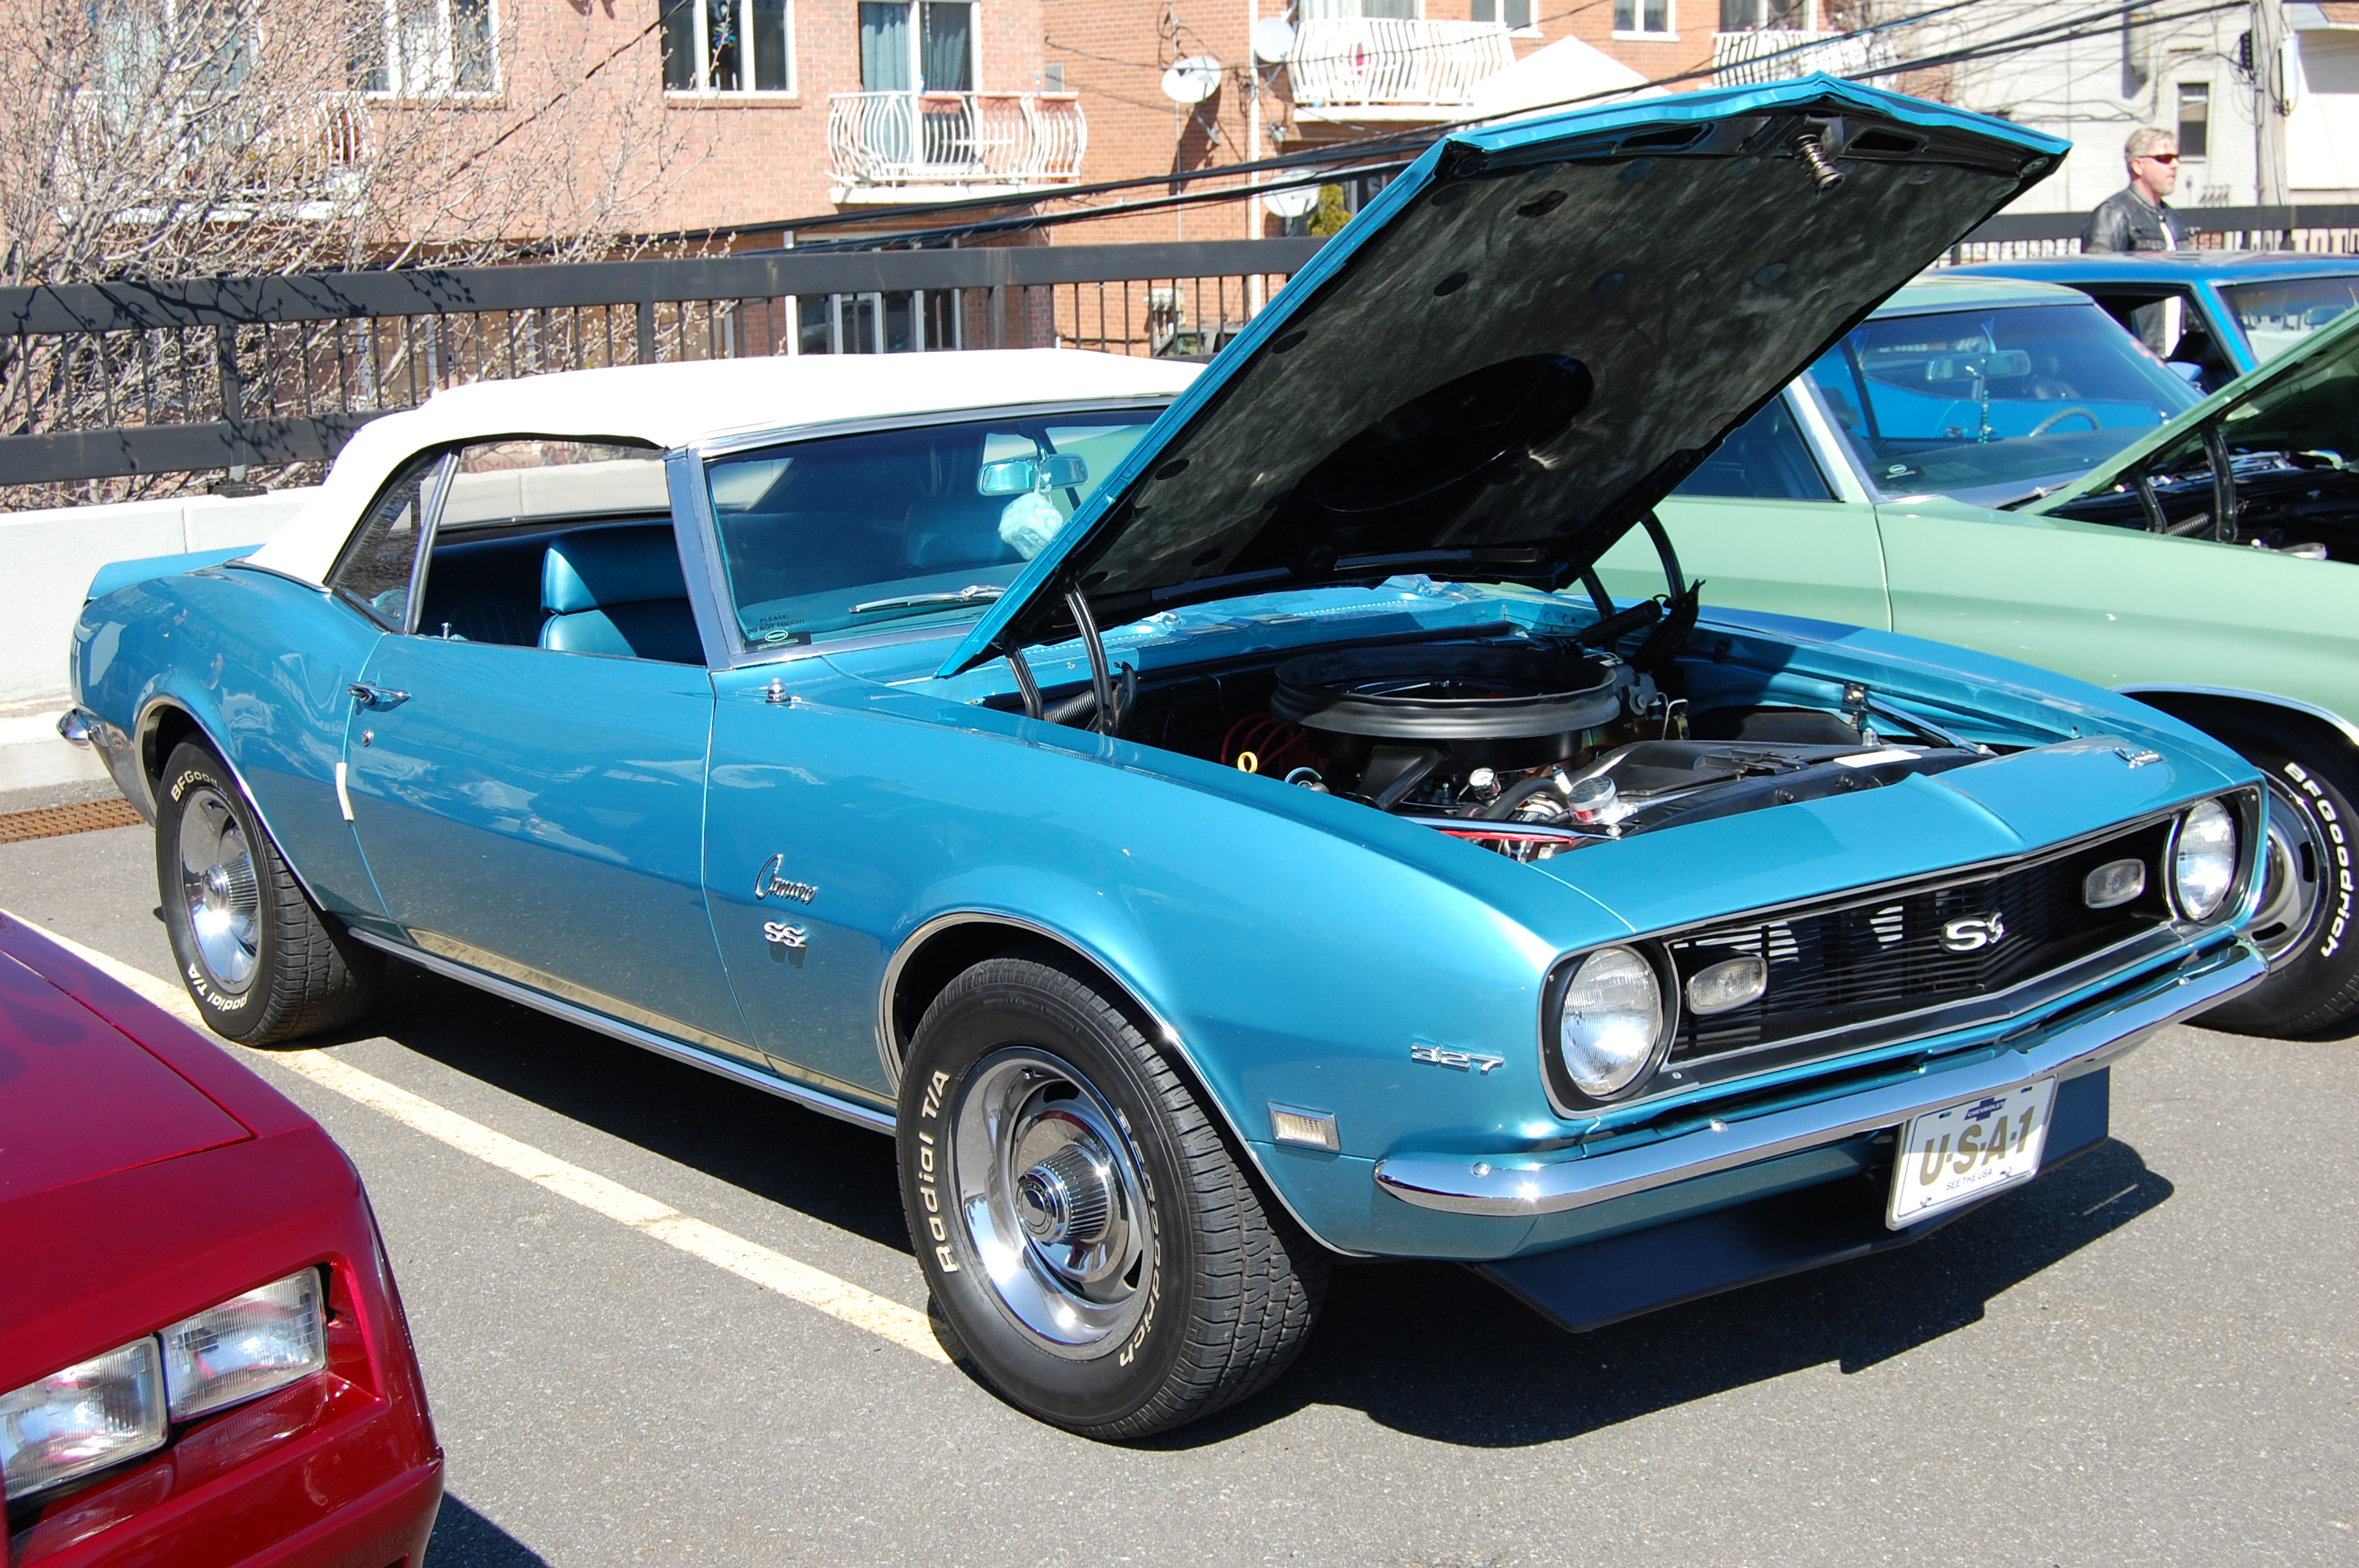 1968 chevrolet camaro ss convertible ii by hardrocker78 on